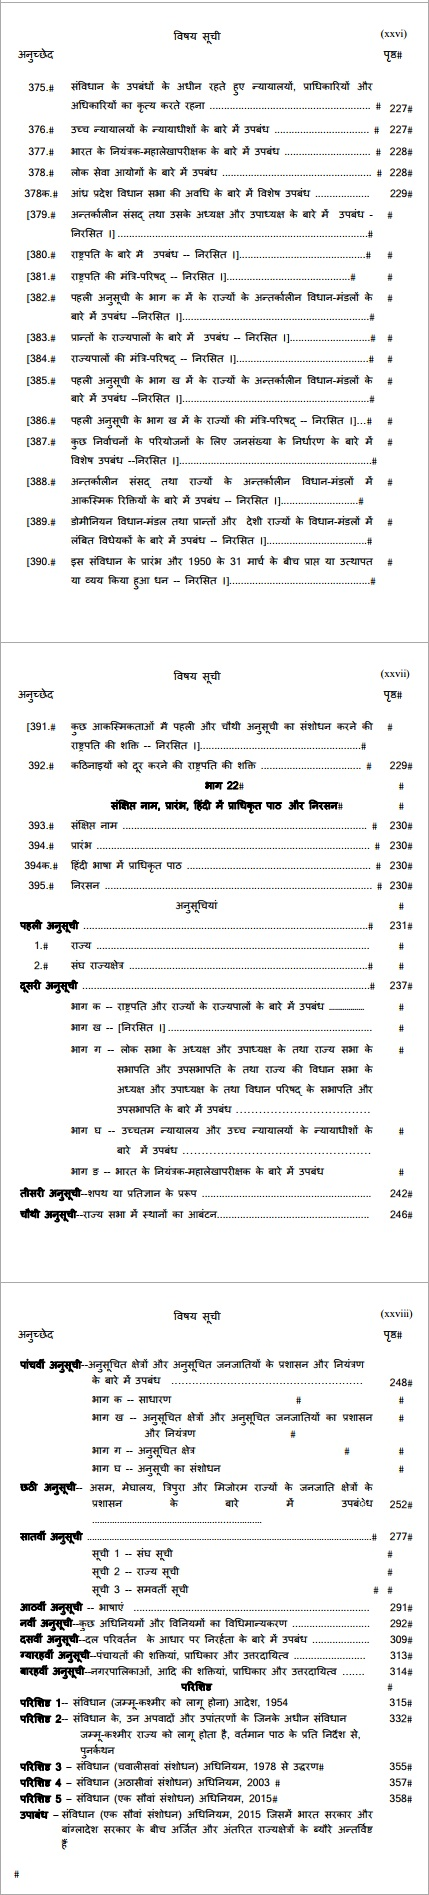 Articles 375 to end in Hindi